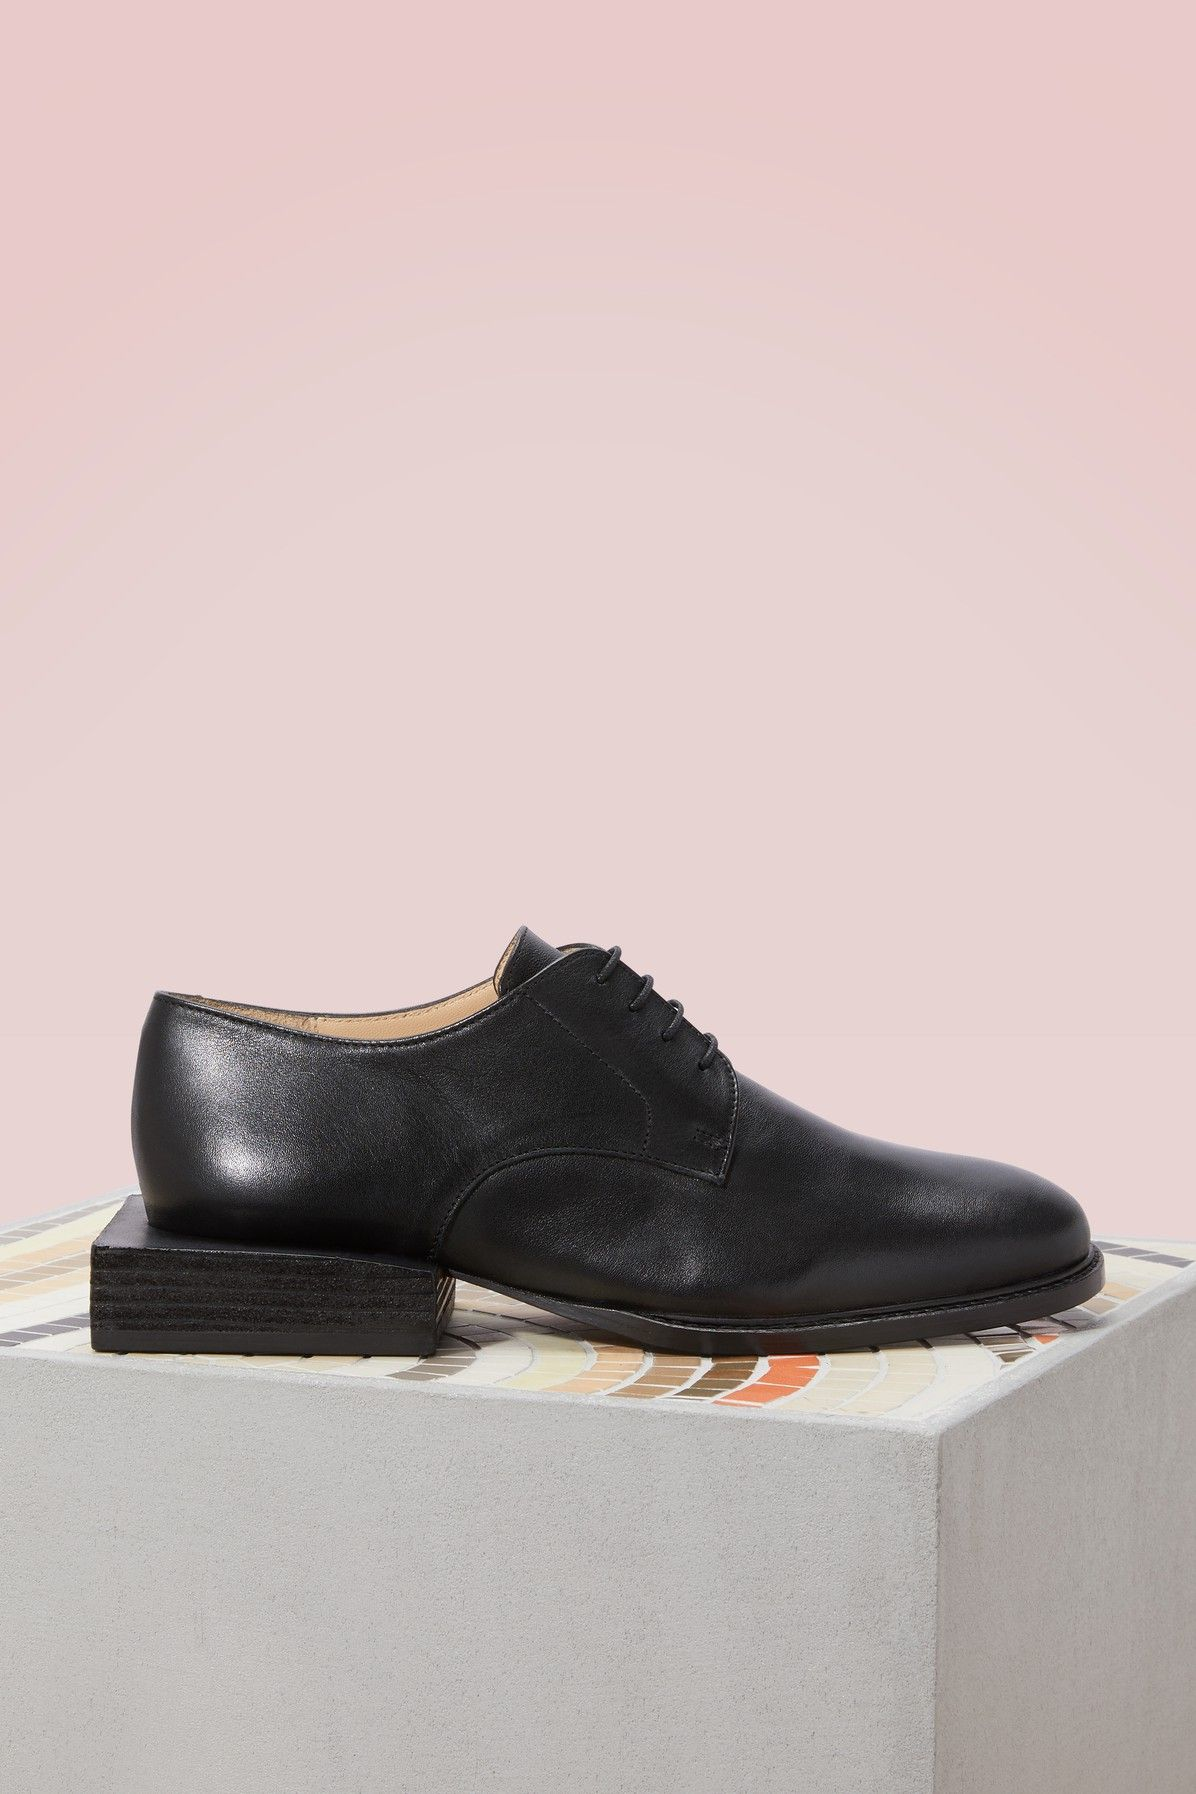 JACQUEMUS. Jacquemus ShoesBrogues. Buy JACQUEMUS Brogues with geometric heels  online ...